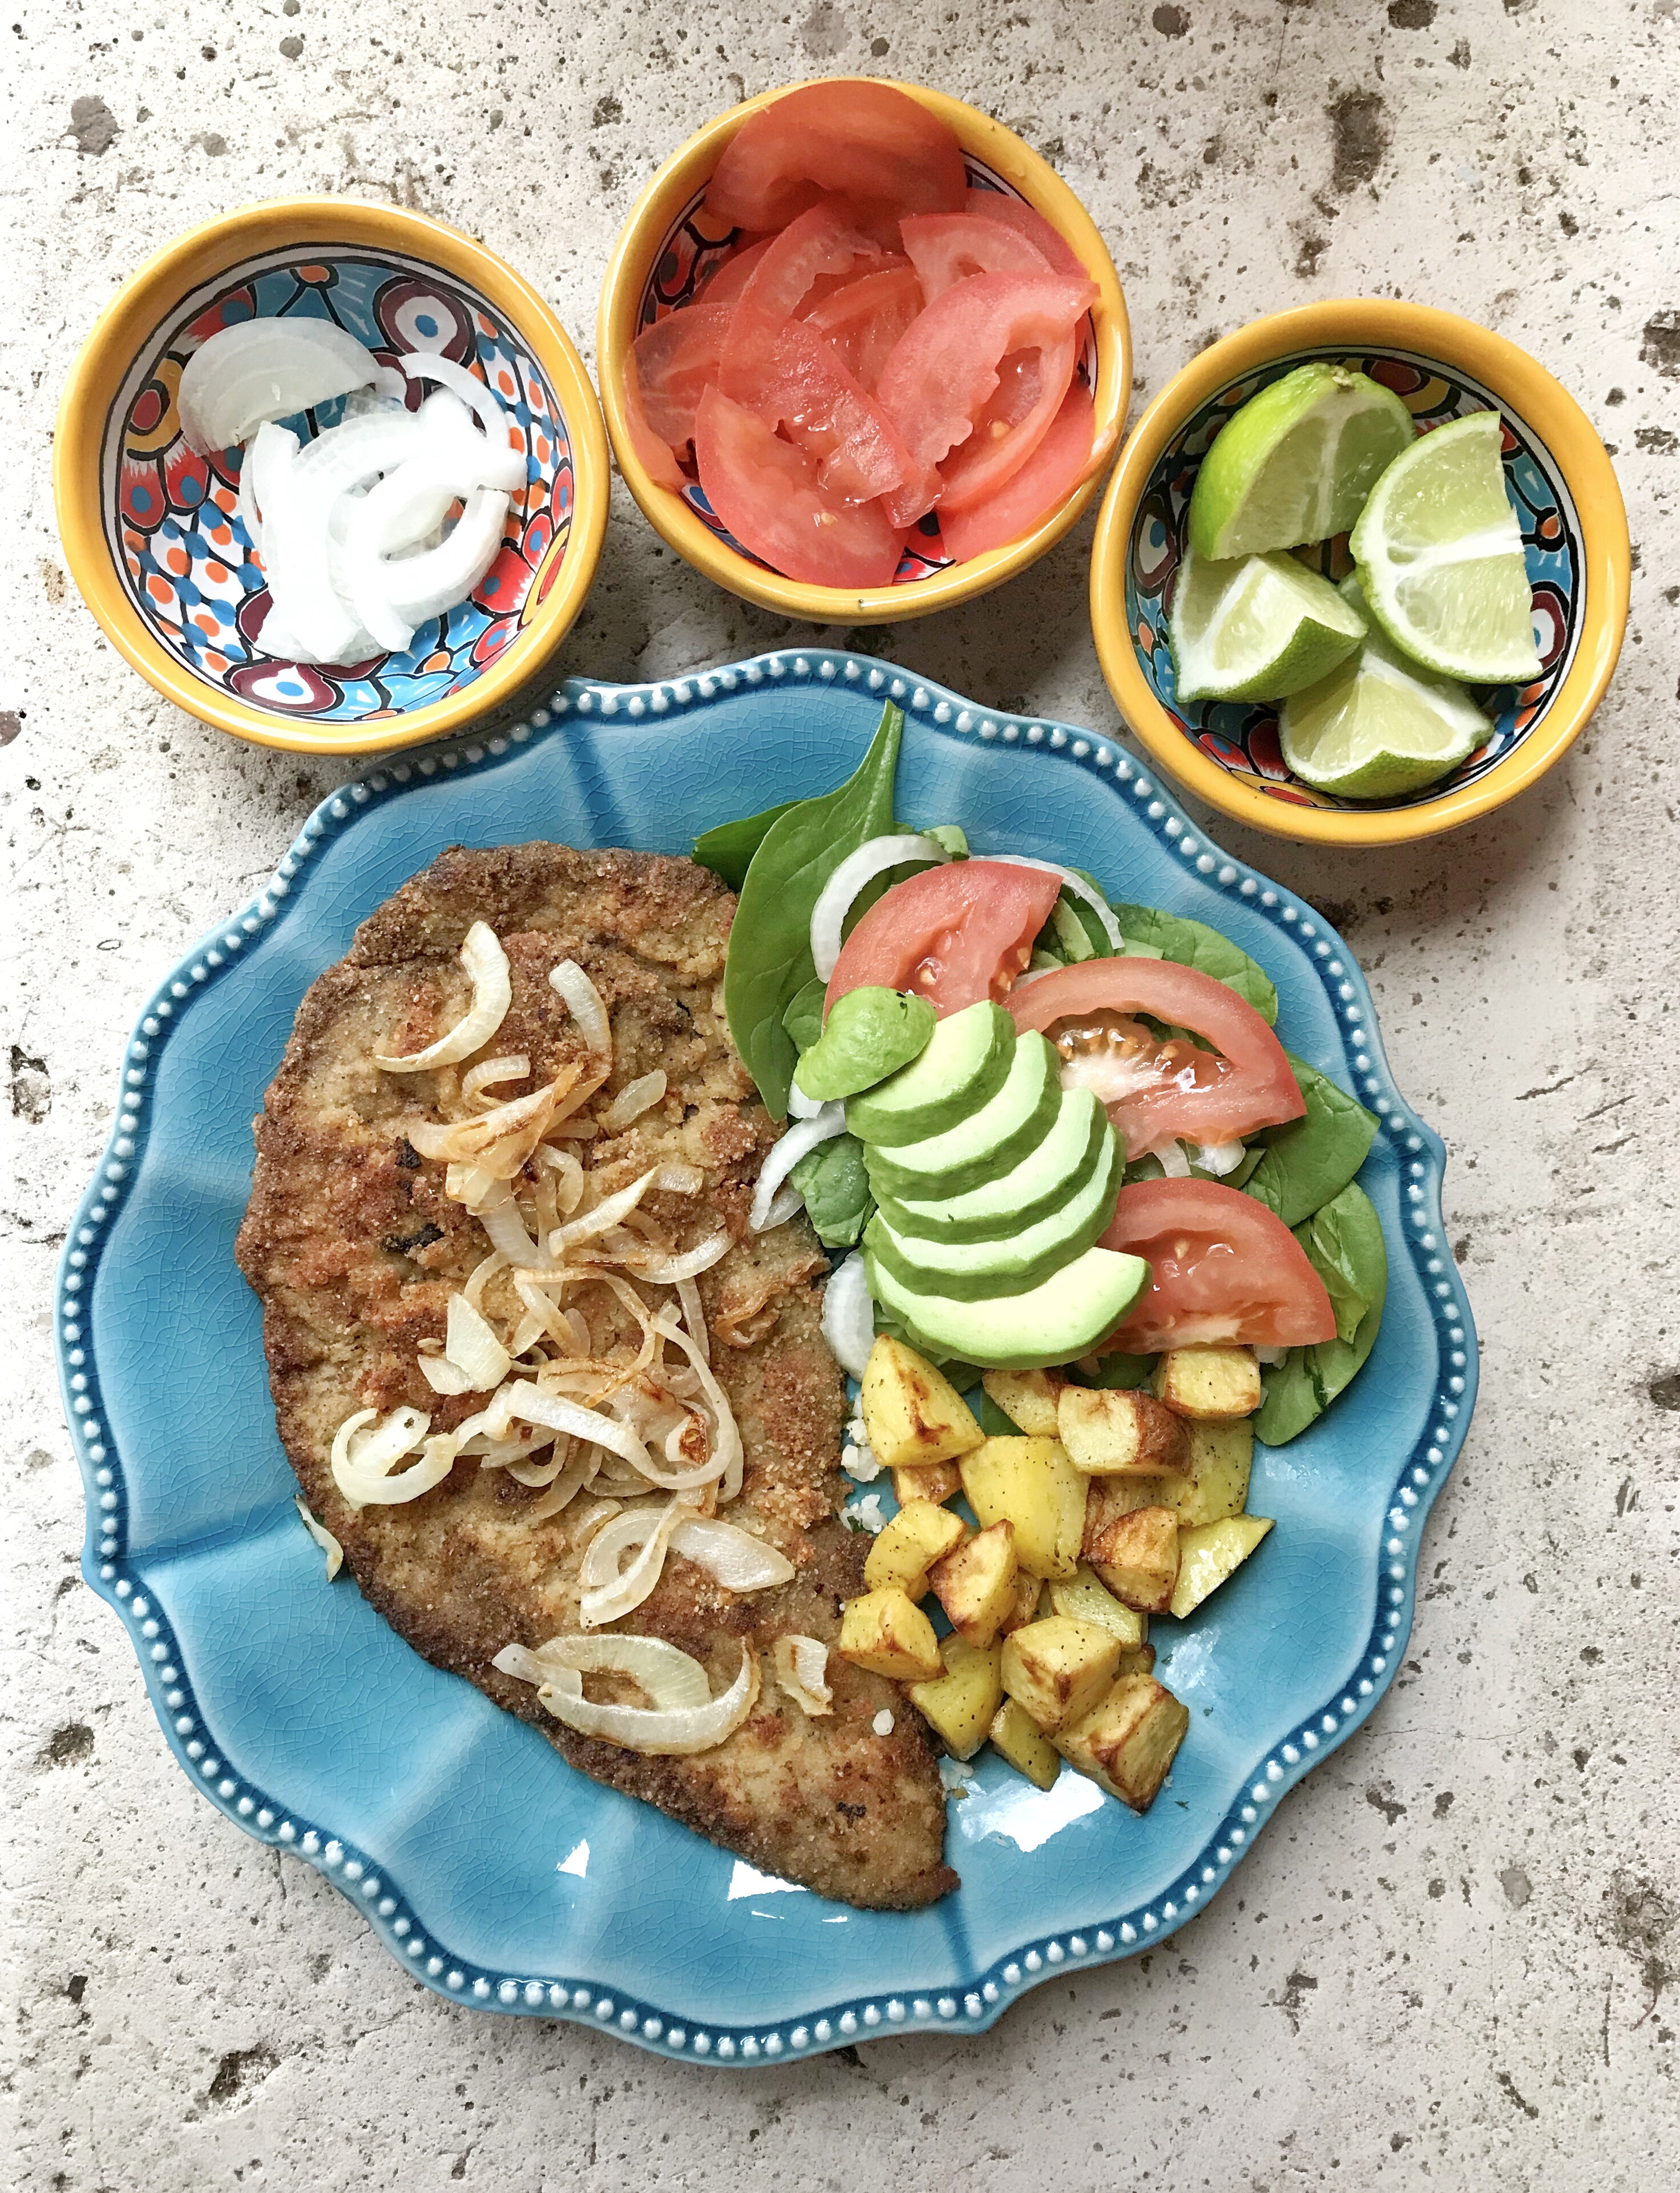 A plate with a milanesa steak topped with sauteed onions. There is a salad as a side with tomatoes, spinach, onions, and avocado. The other side served on the plate is roasted golden potatoes. There are three small condiment bowls with Mexican decorations holding onions, tomatoes, and lime wedges.